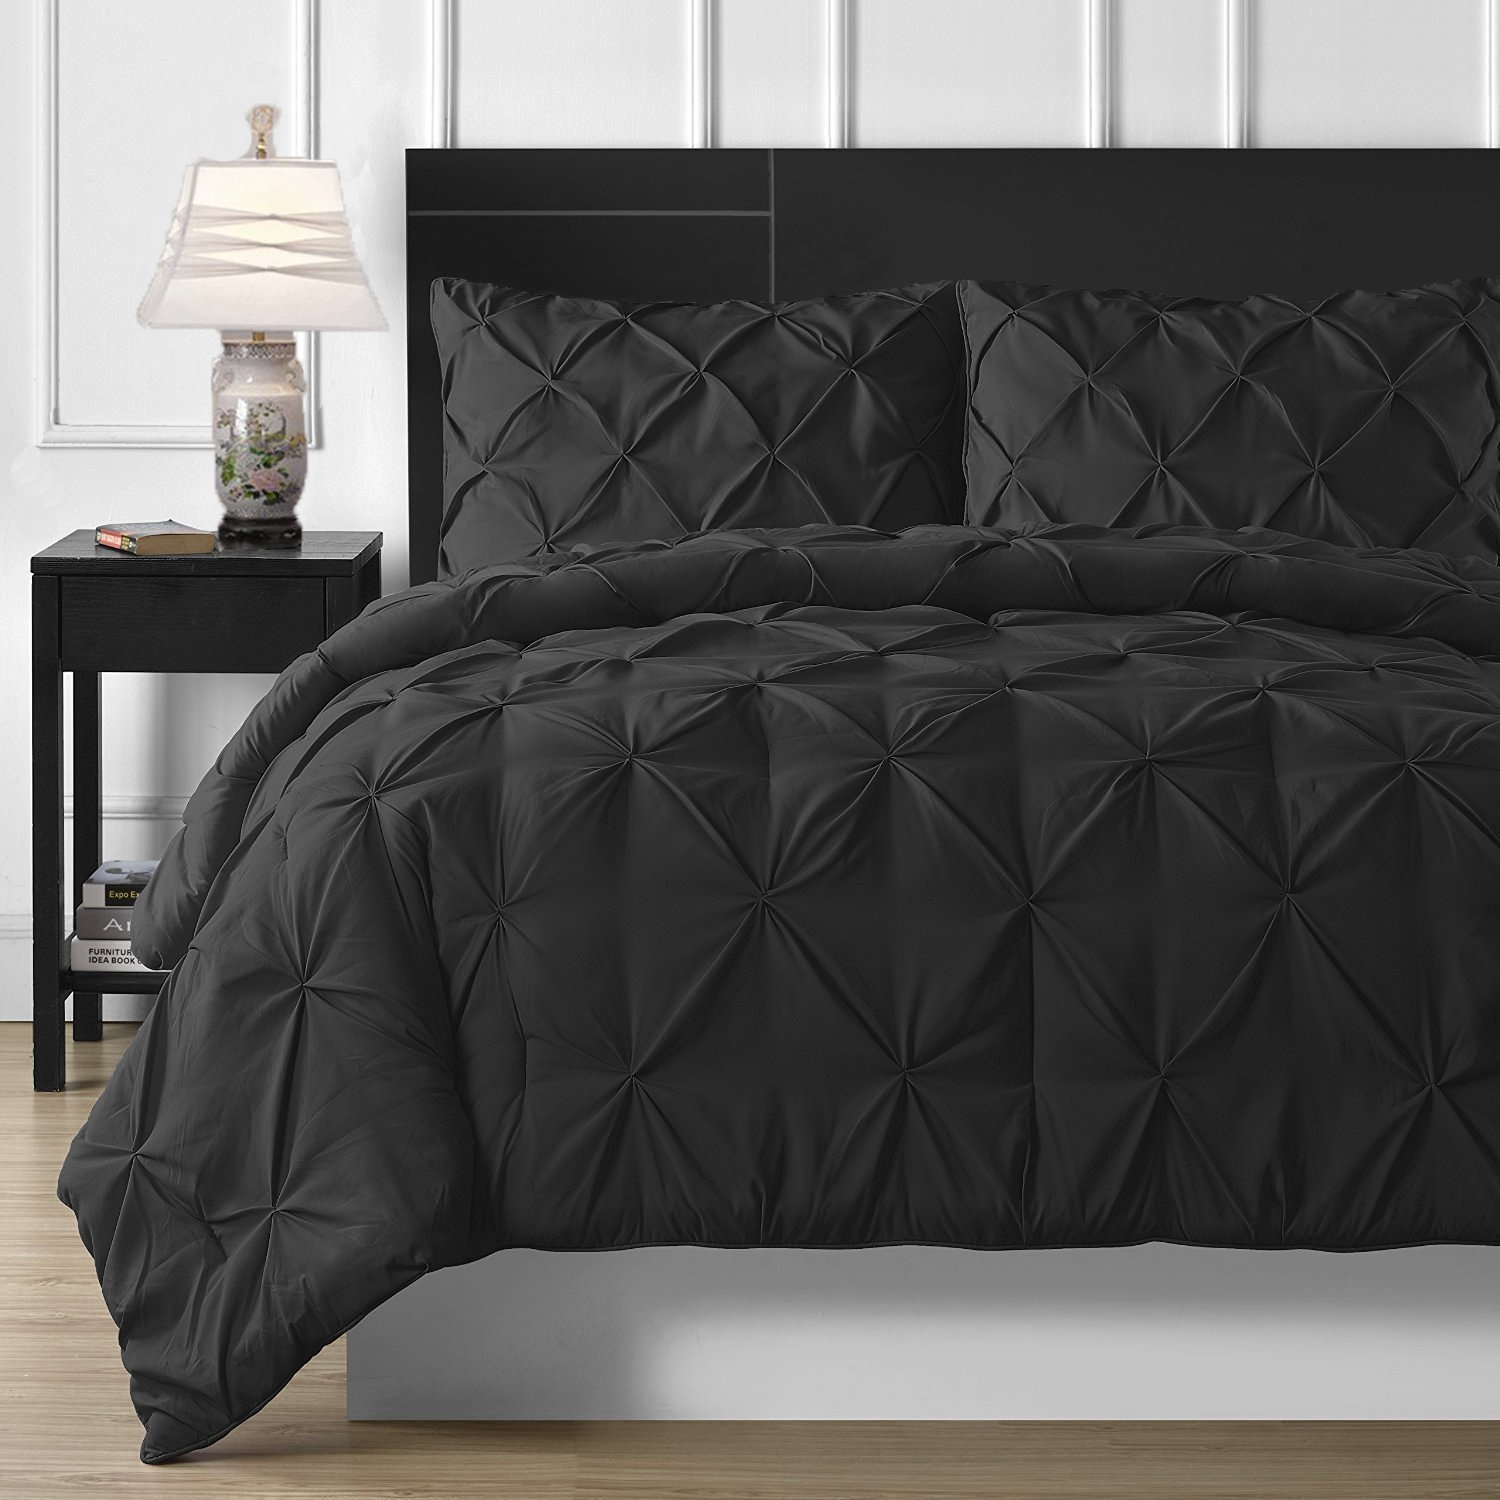 Pinch Pleat Puckering Comforter Set, King Size